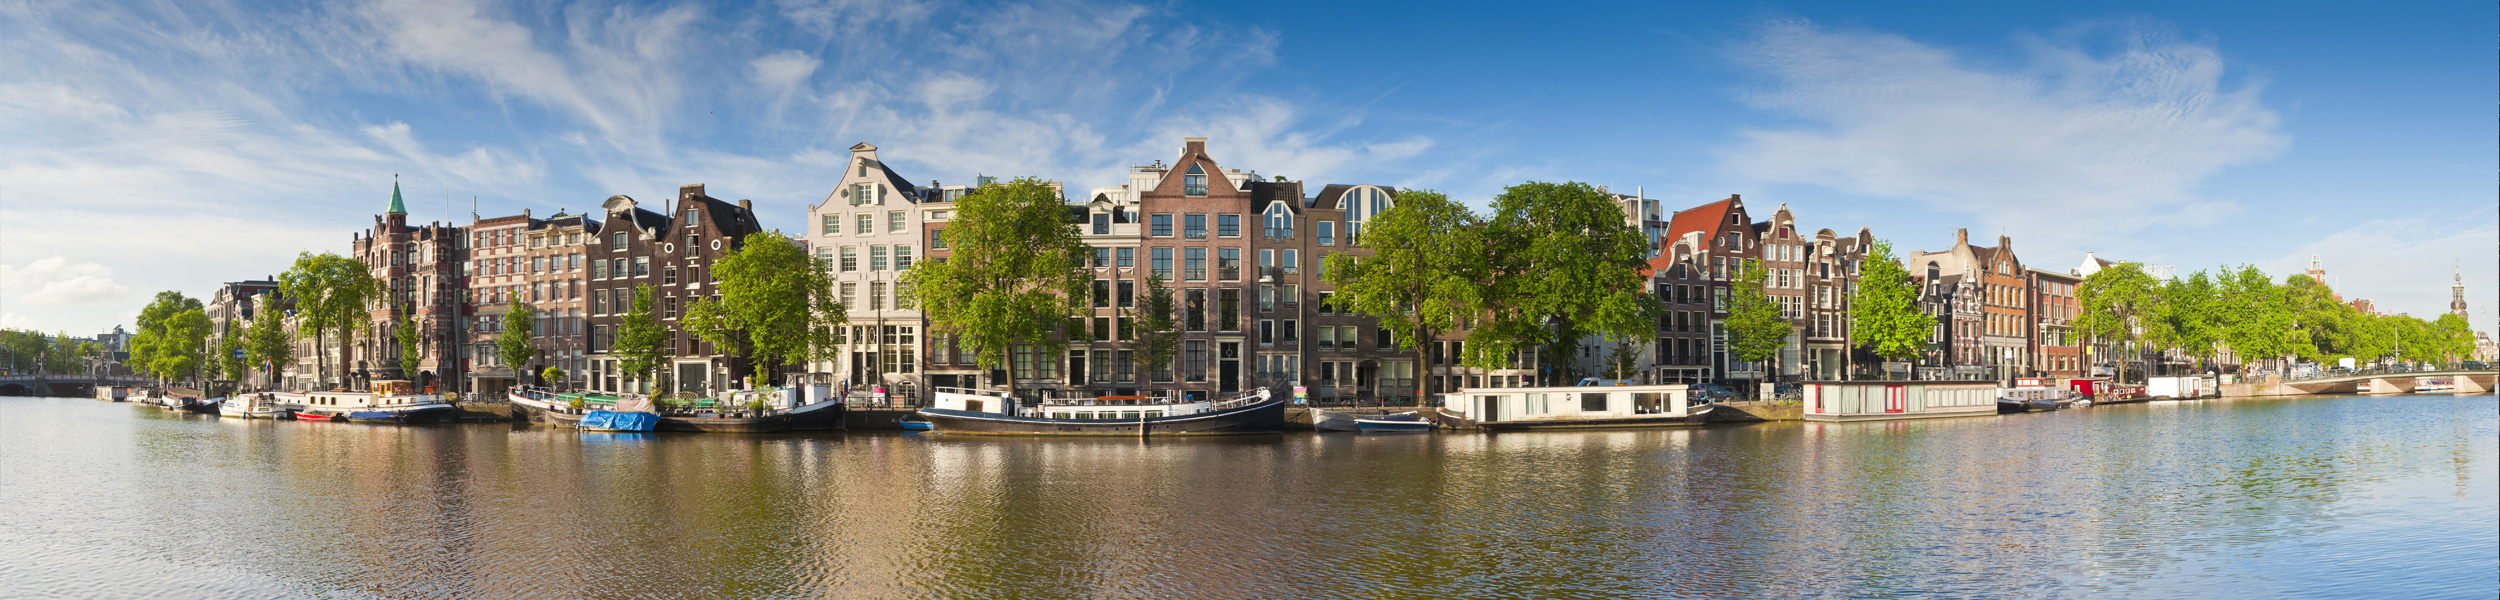 DevOps Lead Amsterdam, the Netherlands